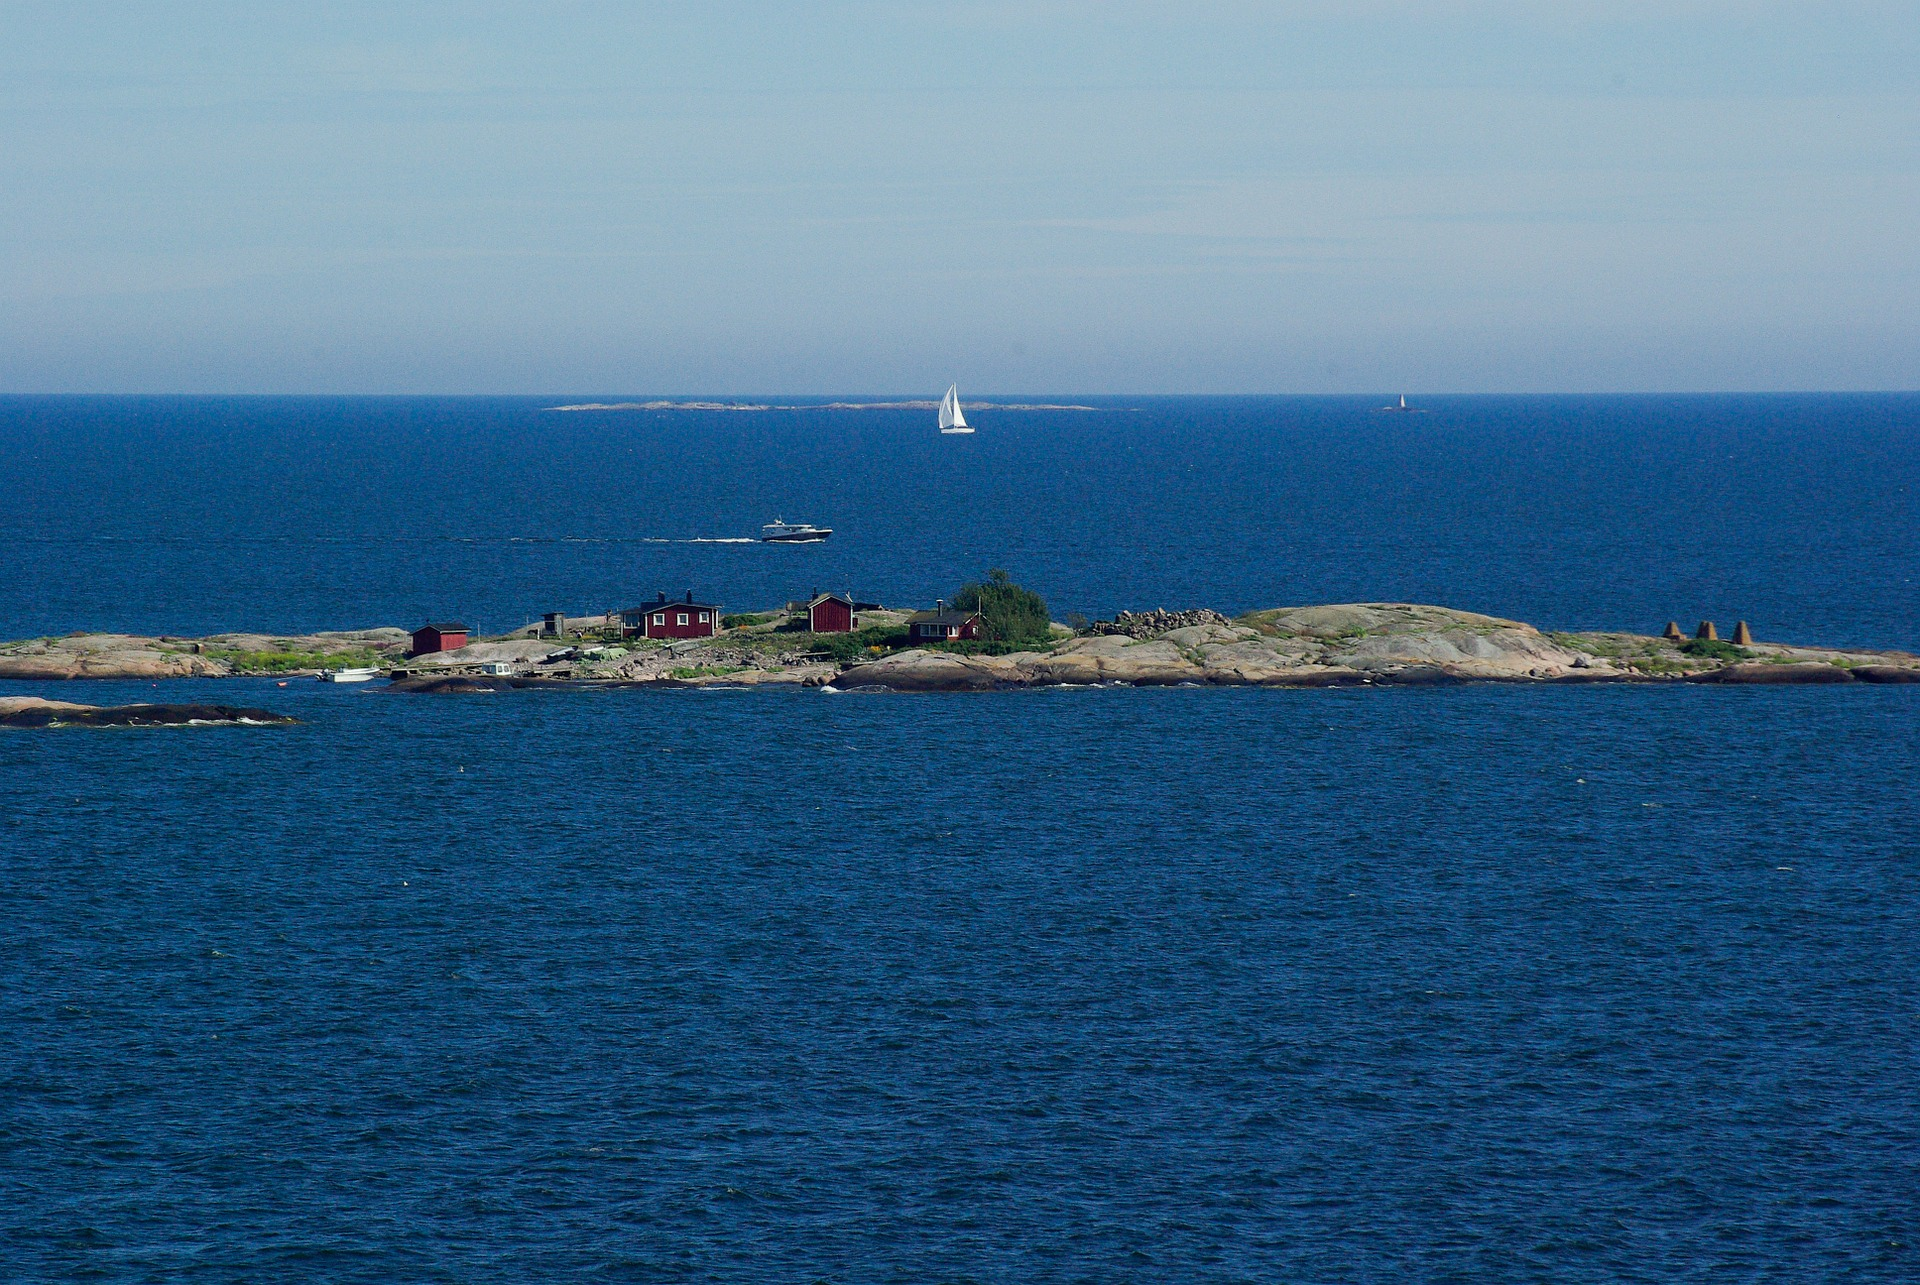 baltic sea and finland And marine observations at the finnish utö island in the baltic sea  of the  archipelago sea, by the baltic sea towards the baltic proper.